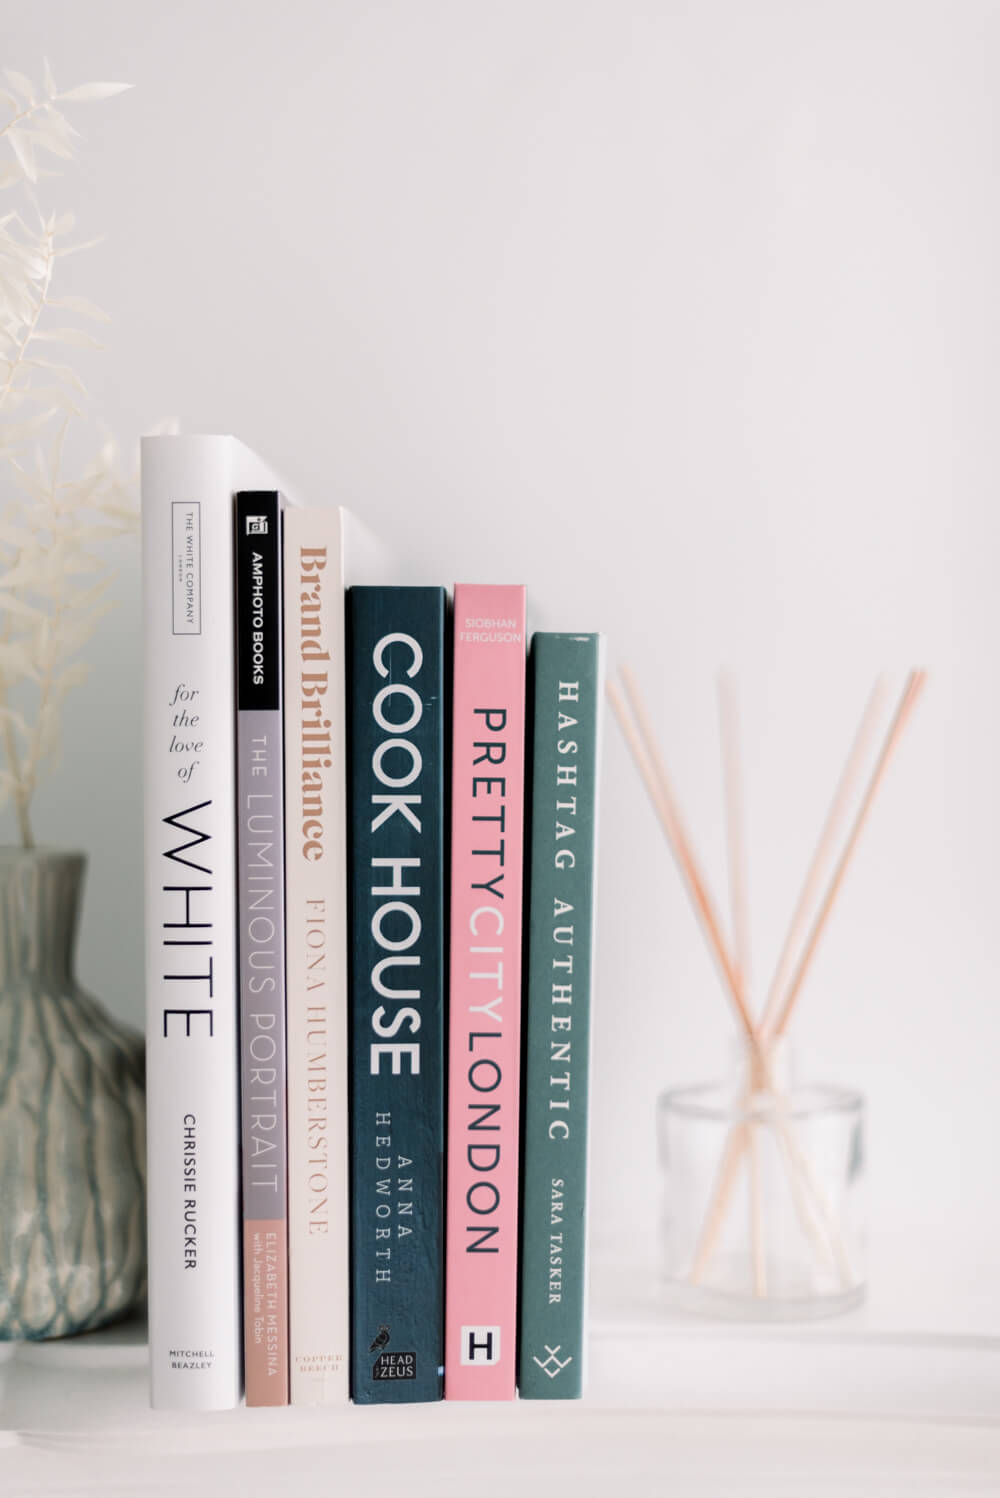 Best Reads: The story of Anne Frank (Anne Frank Museum), Hashtag Authentic (Sara Tasker), Pretty City London (Siobhan Ferguson), Brand Brilliance (Fiona Humberstone), The Luminous Portrait (Elizabeth Messina), For the Love of White (Chrissie Rucker)